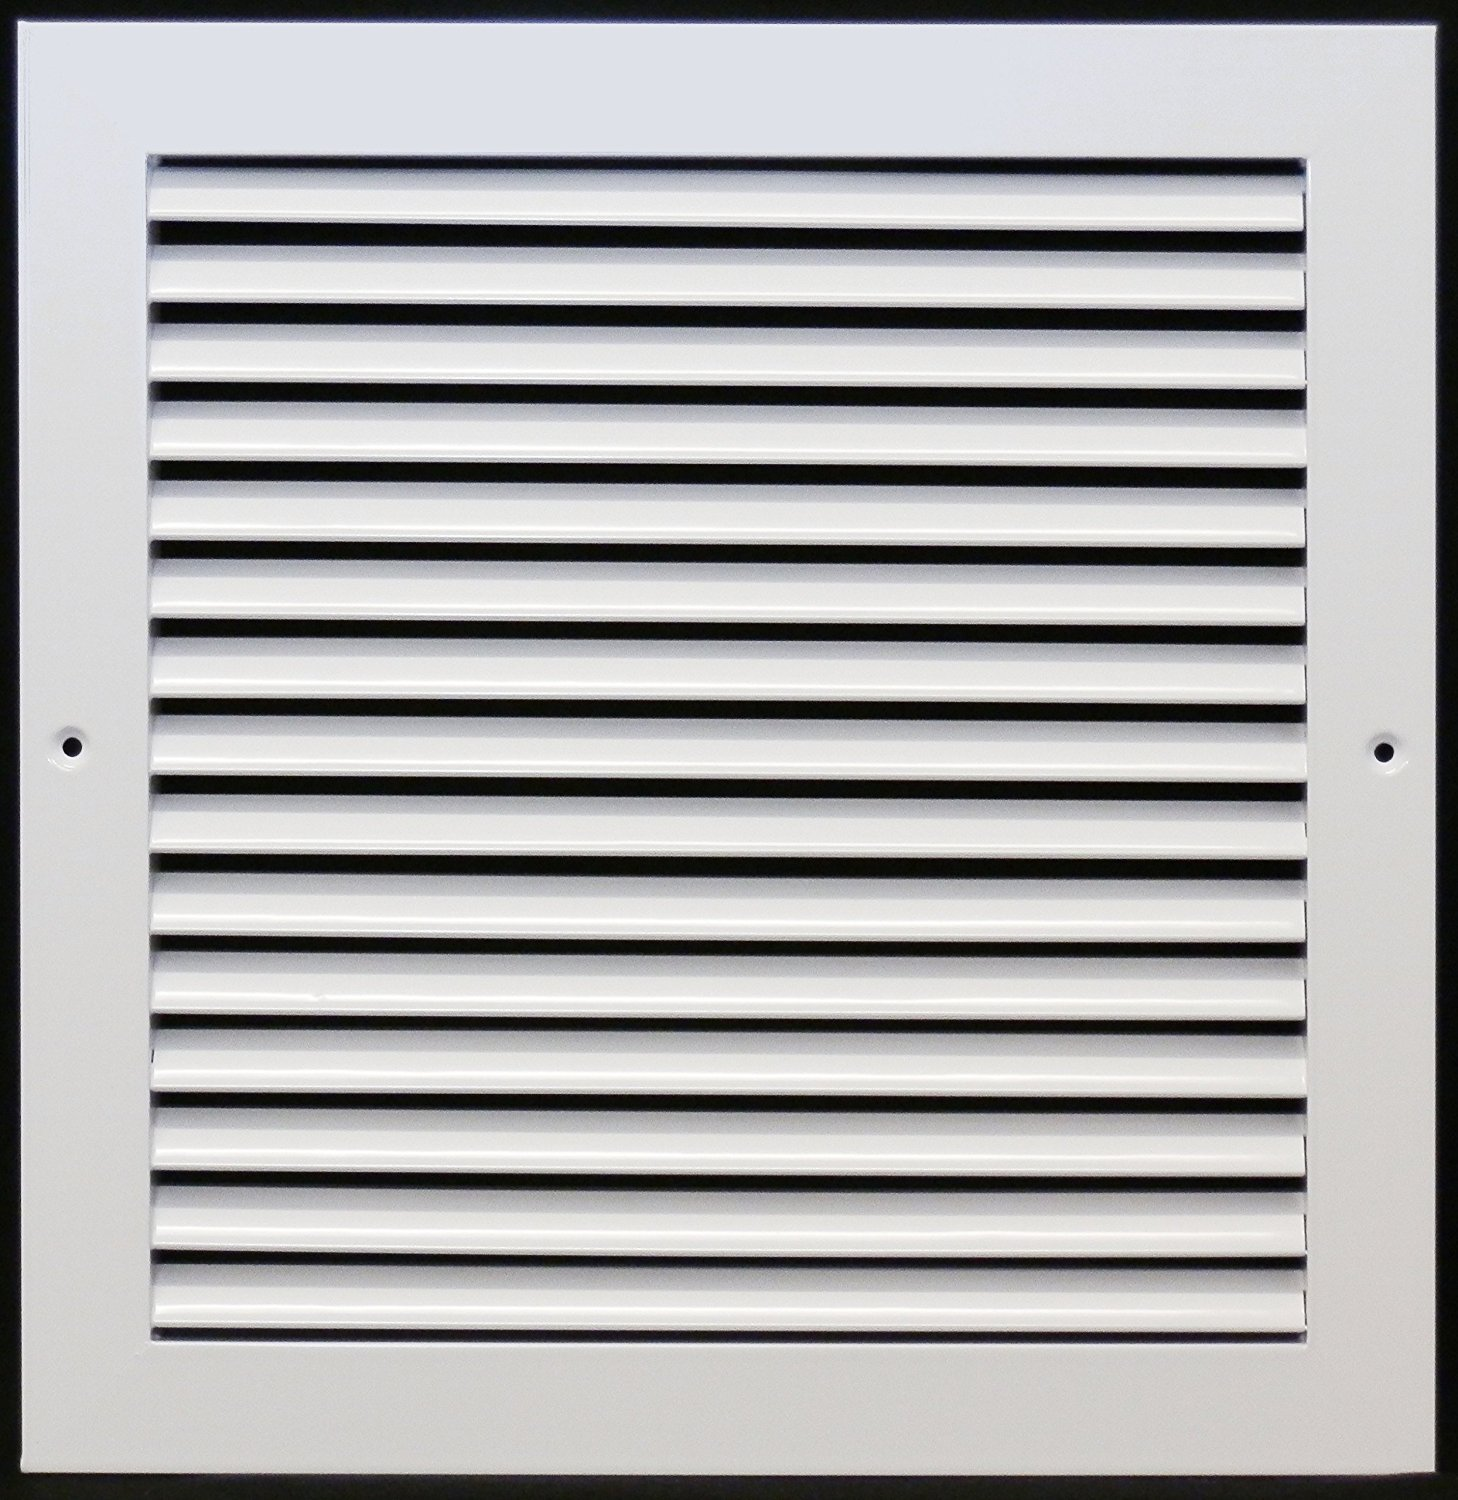 20'' x 20'' Aluminum Return Grille - Easy Air FLow - Linear Bar Grilles [Outer Dimensions: 21.75''w X 21.75''h]